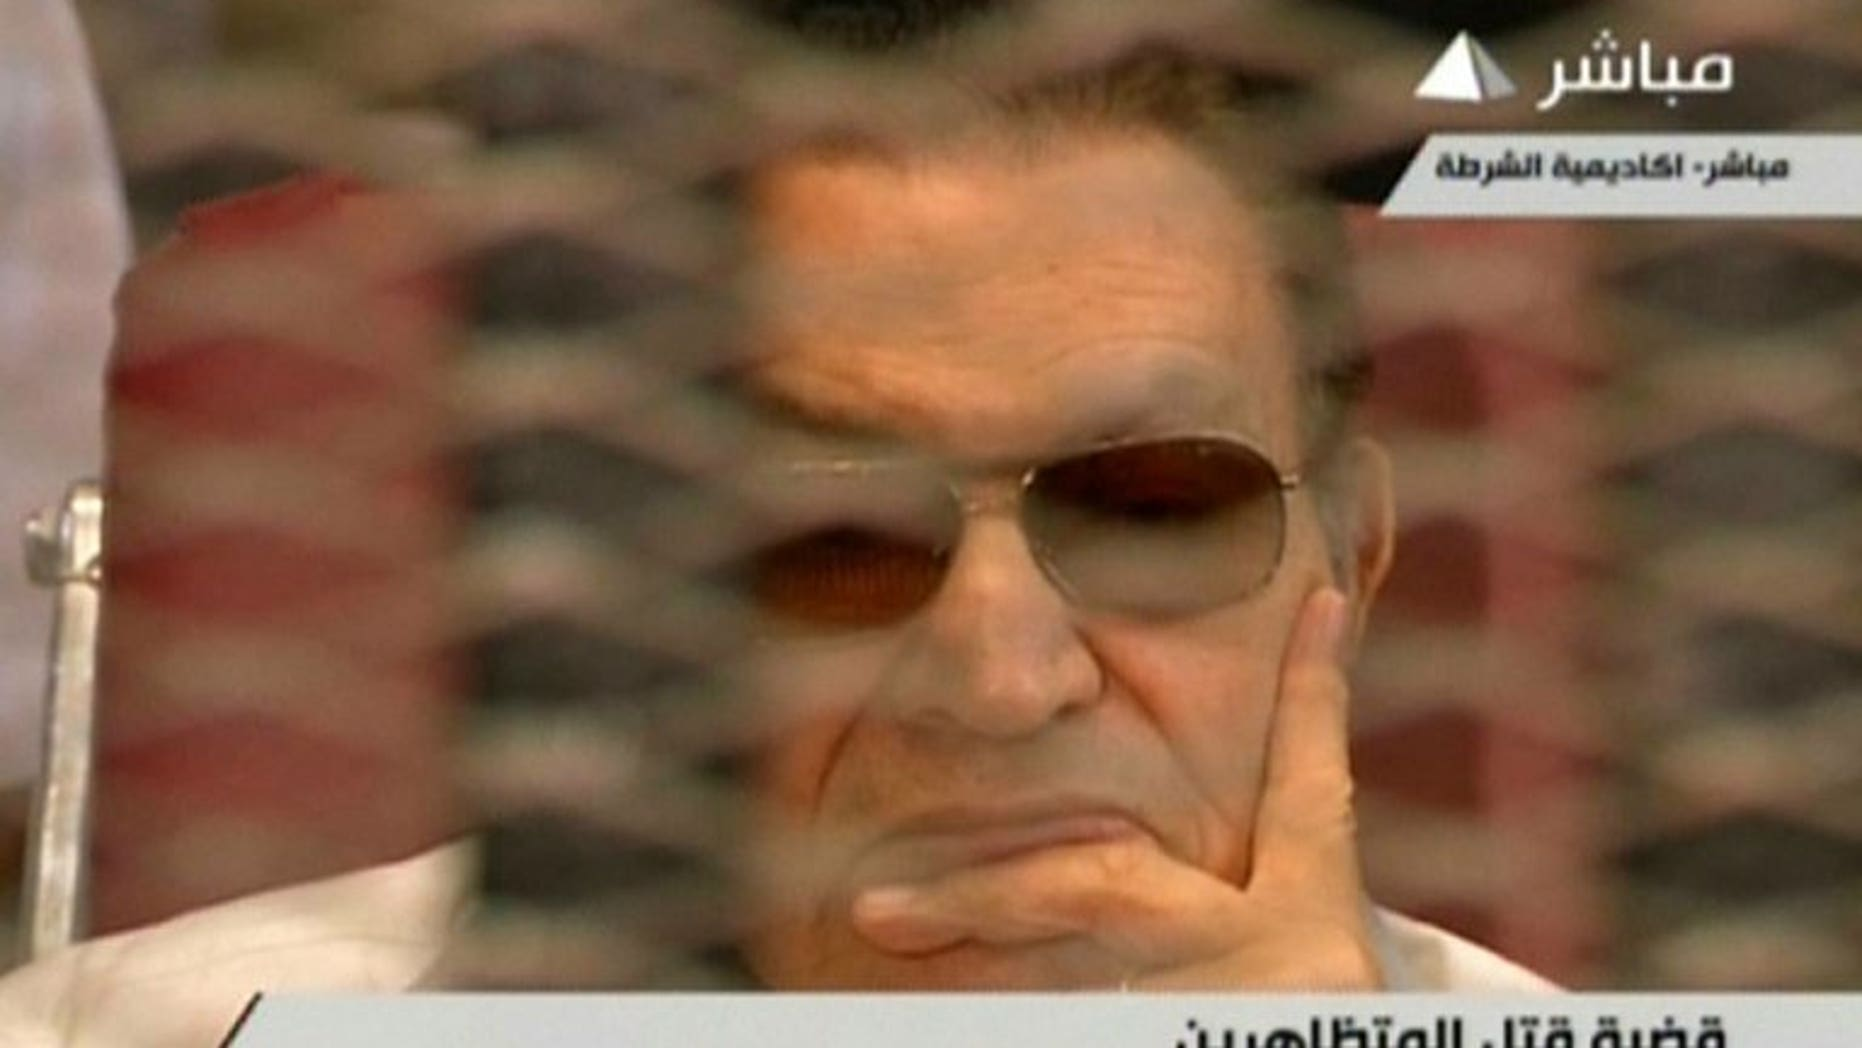 An image from Egyptian state TV shows ousted president Hosni Mubarak sitting behind bars during his retrial in Cairo on July 6, 2013.